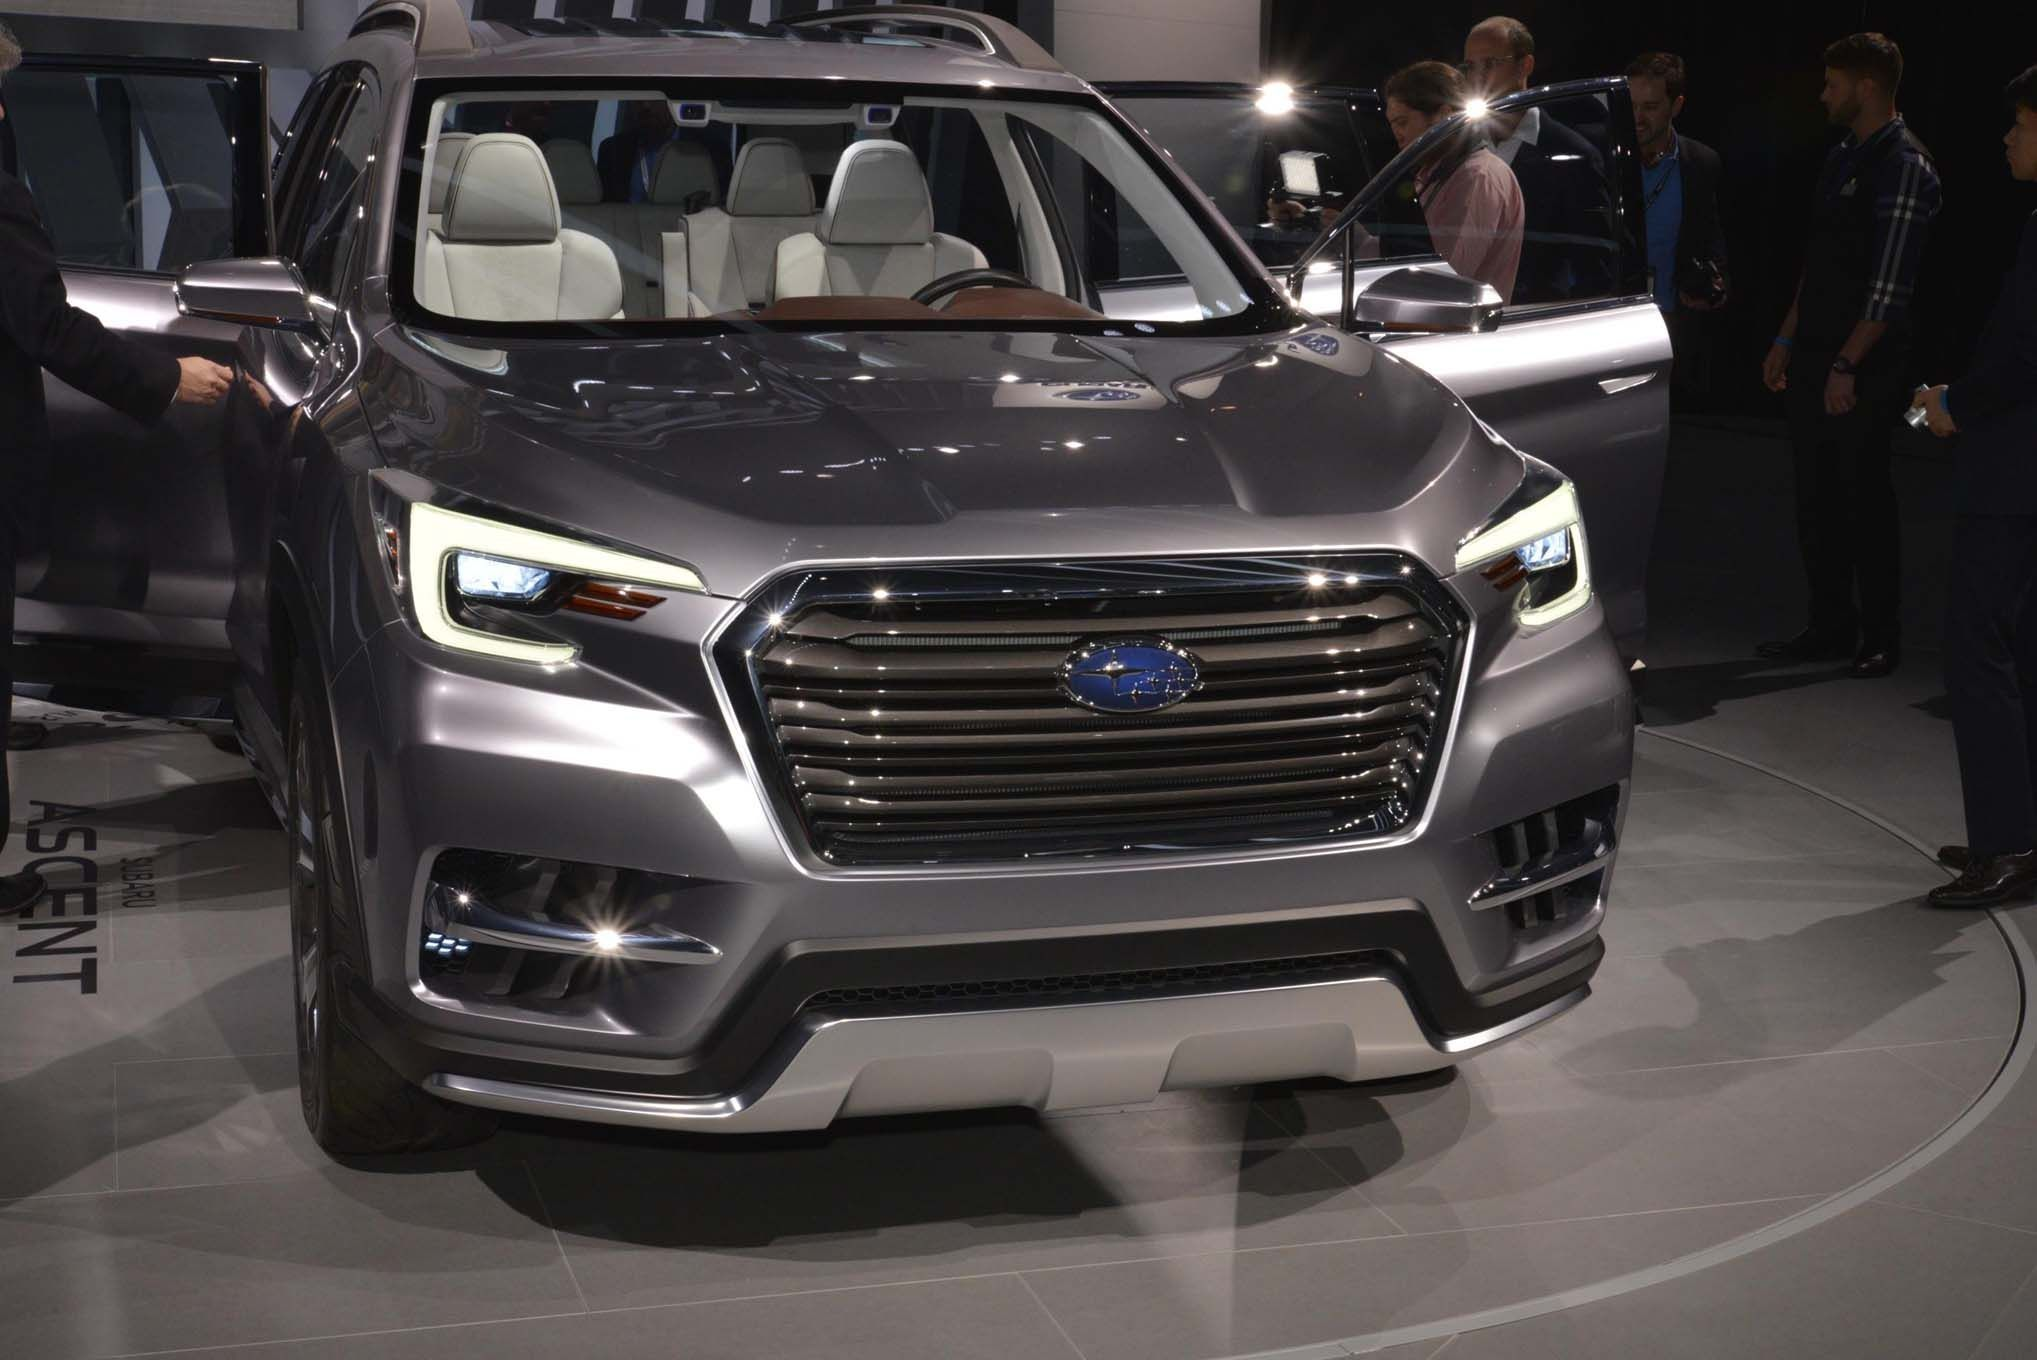 2019 Subaru Forester Exterior And Interior Review Car And Home